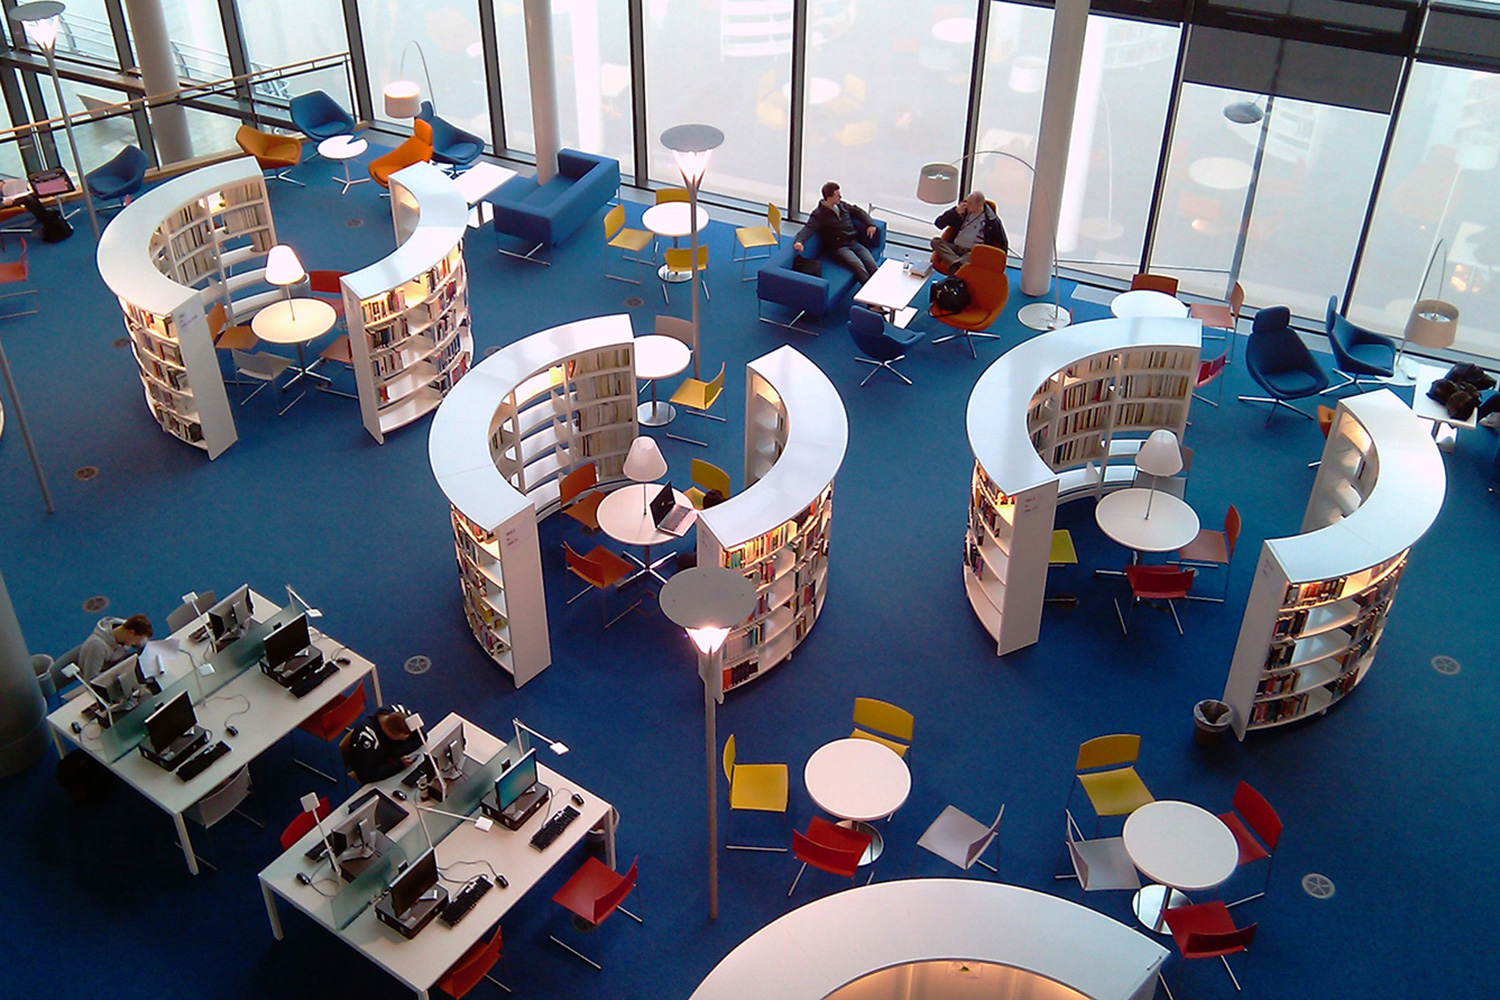 16_newport_university_library_uk_001